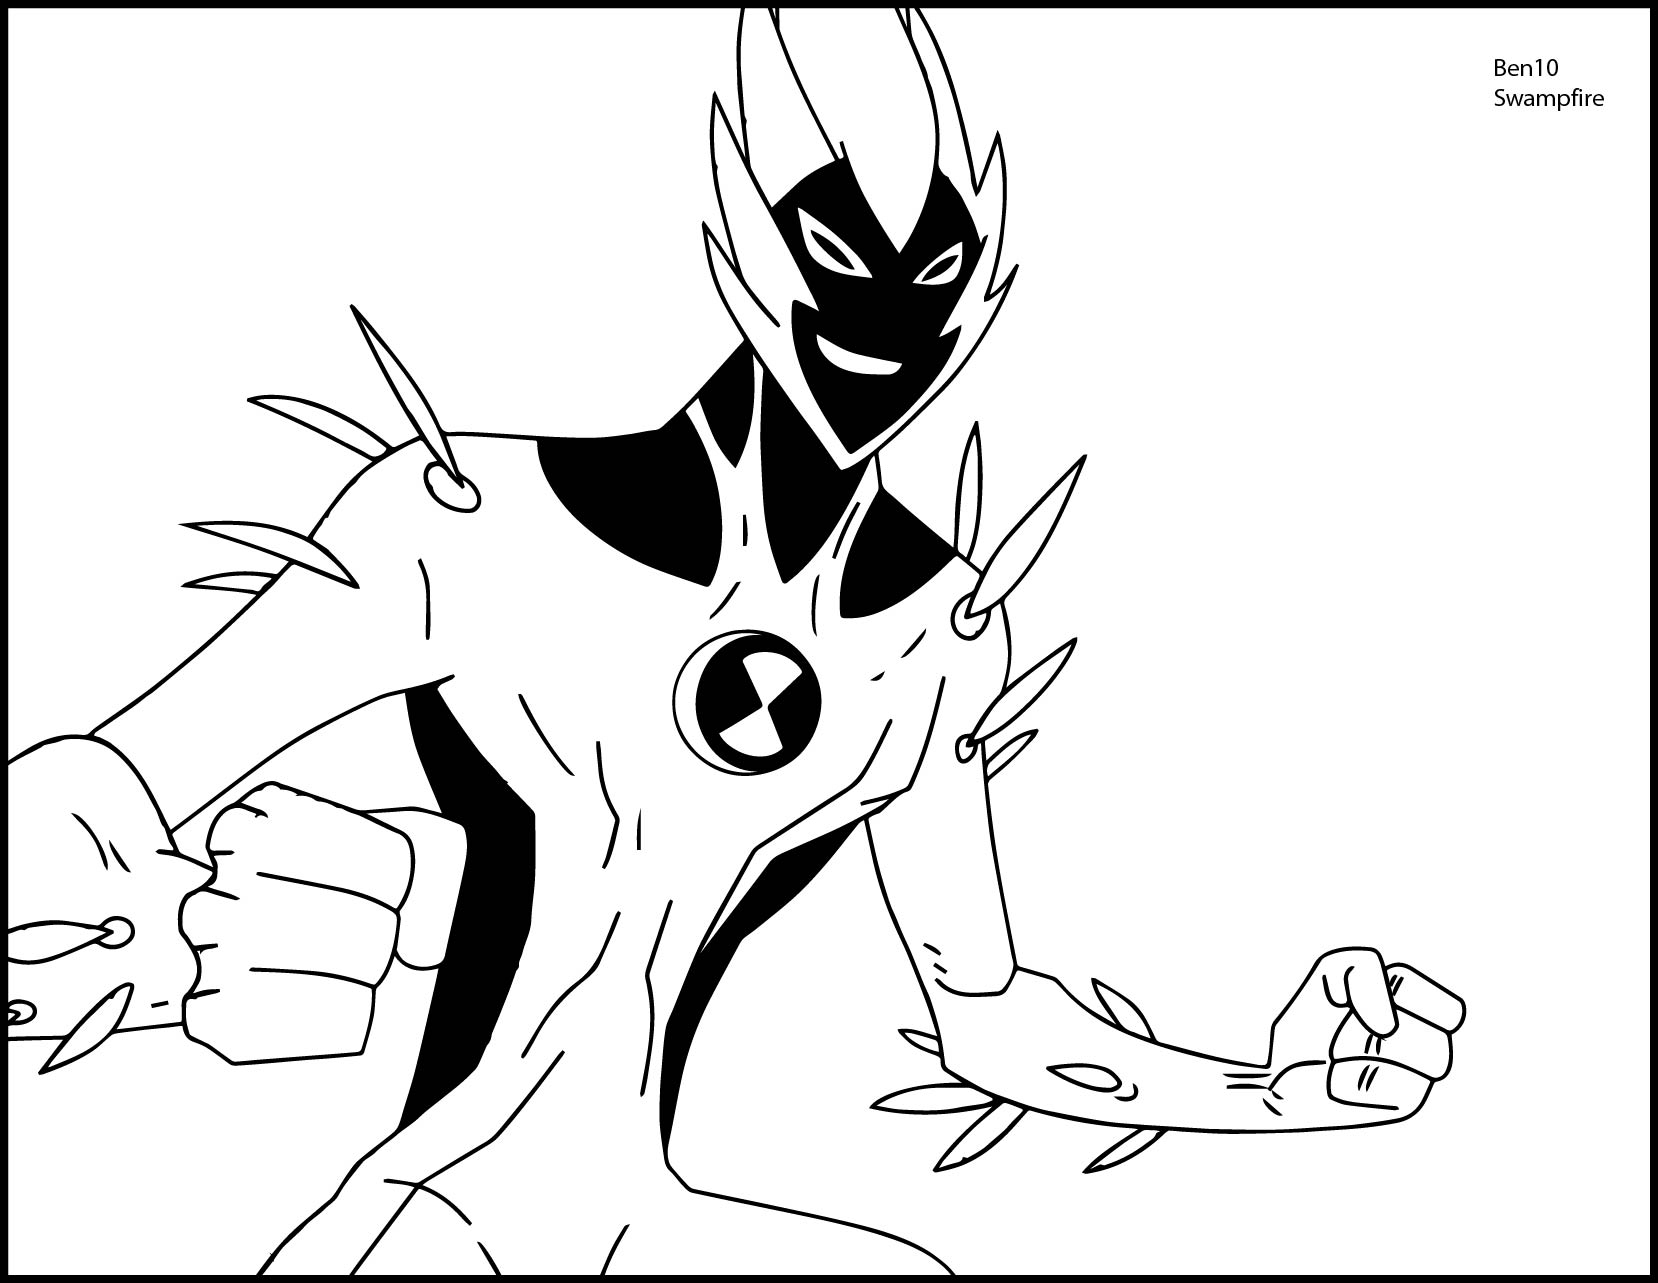 Ben 10 alien force swampfire we coloring page for Coloring pages of ben 10 aliens